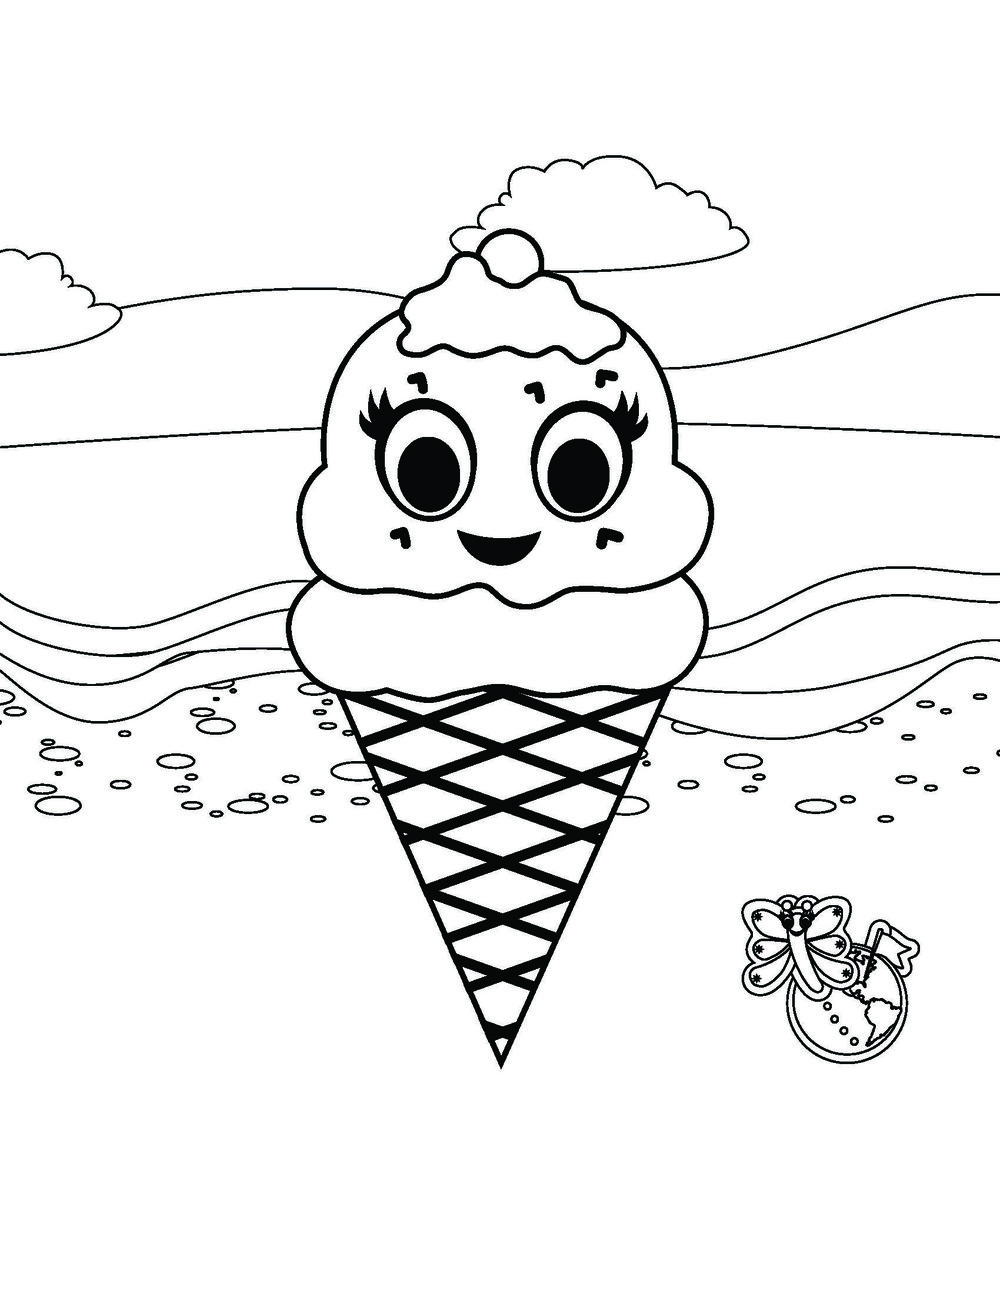 Edie the Ice Cream Cone